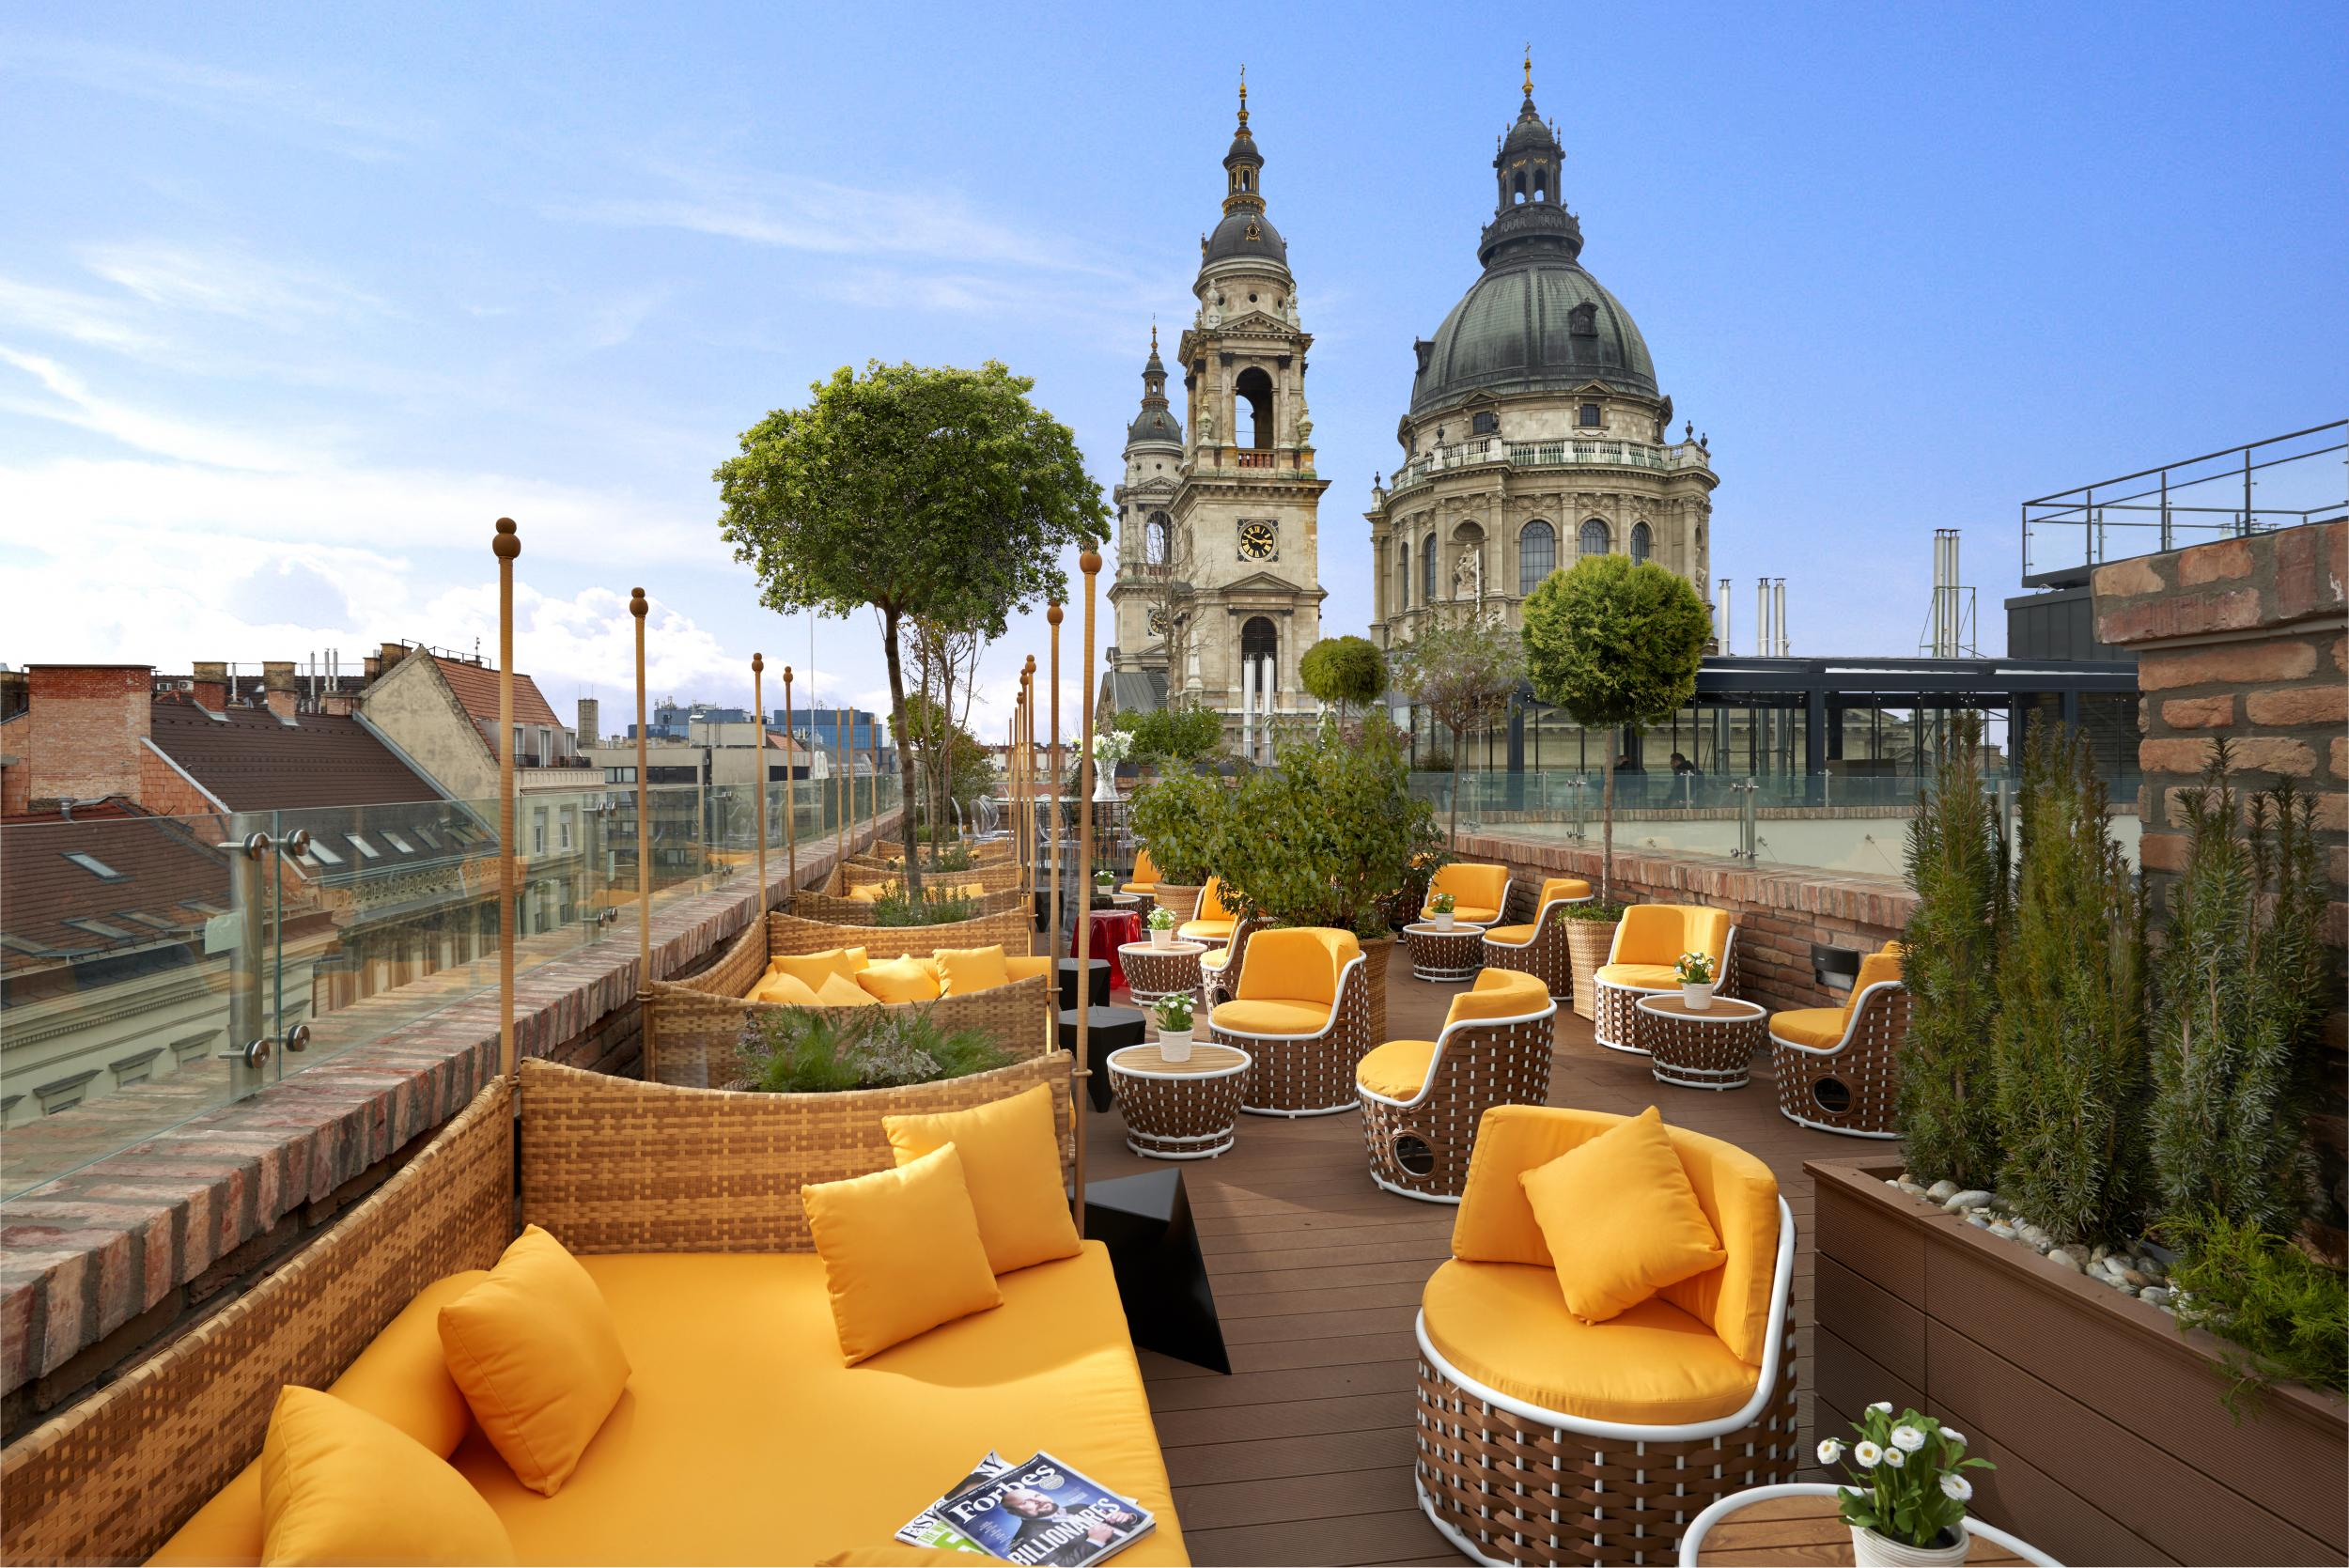 Budapest hotels: 10 of the best places to stay